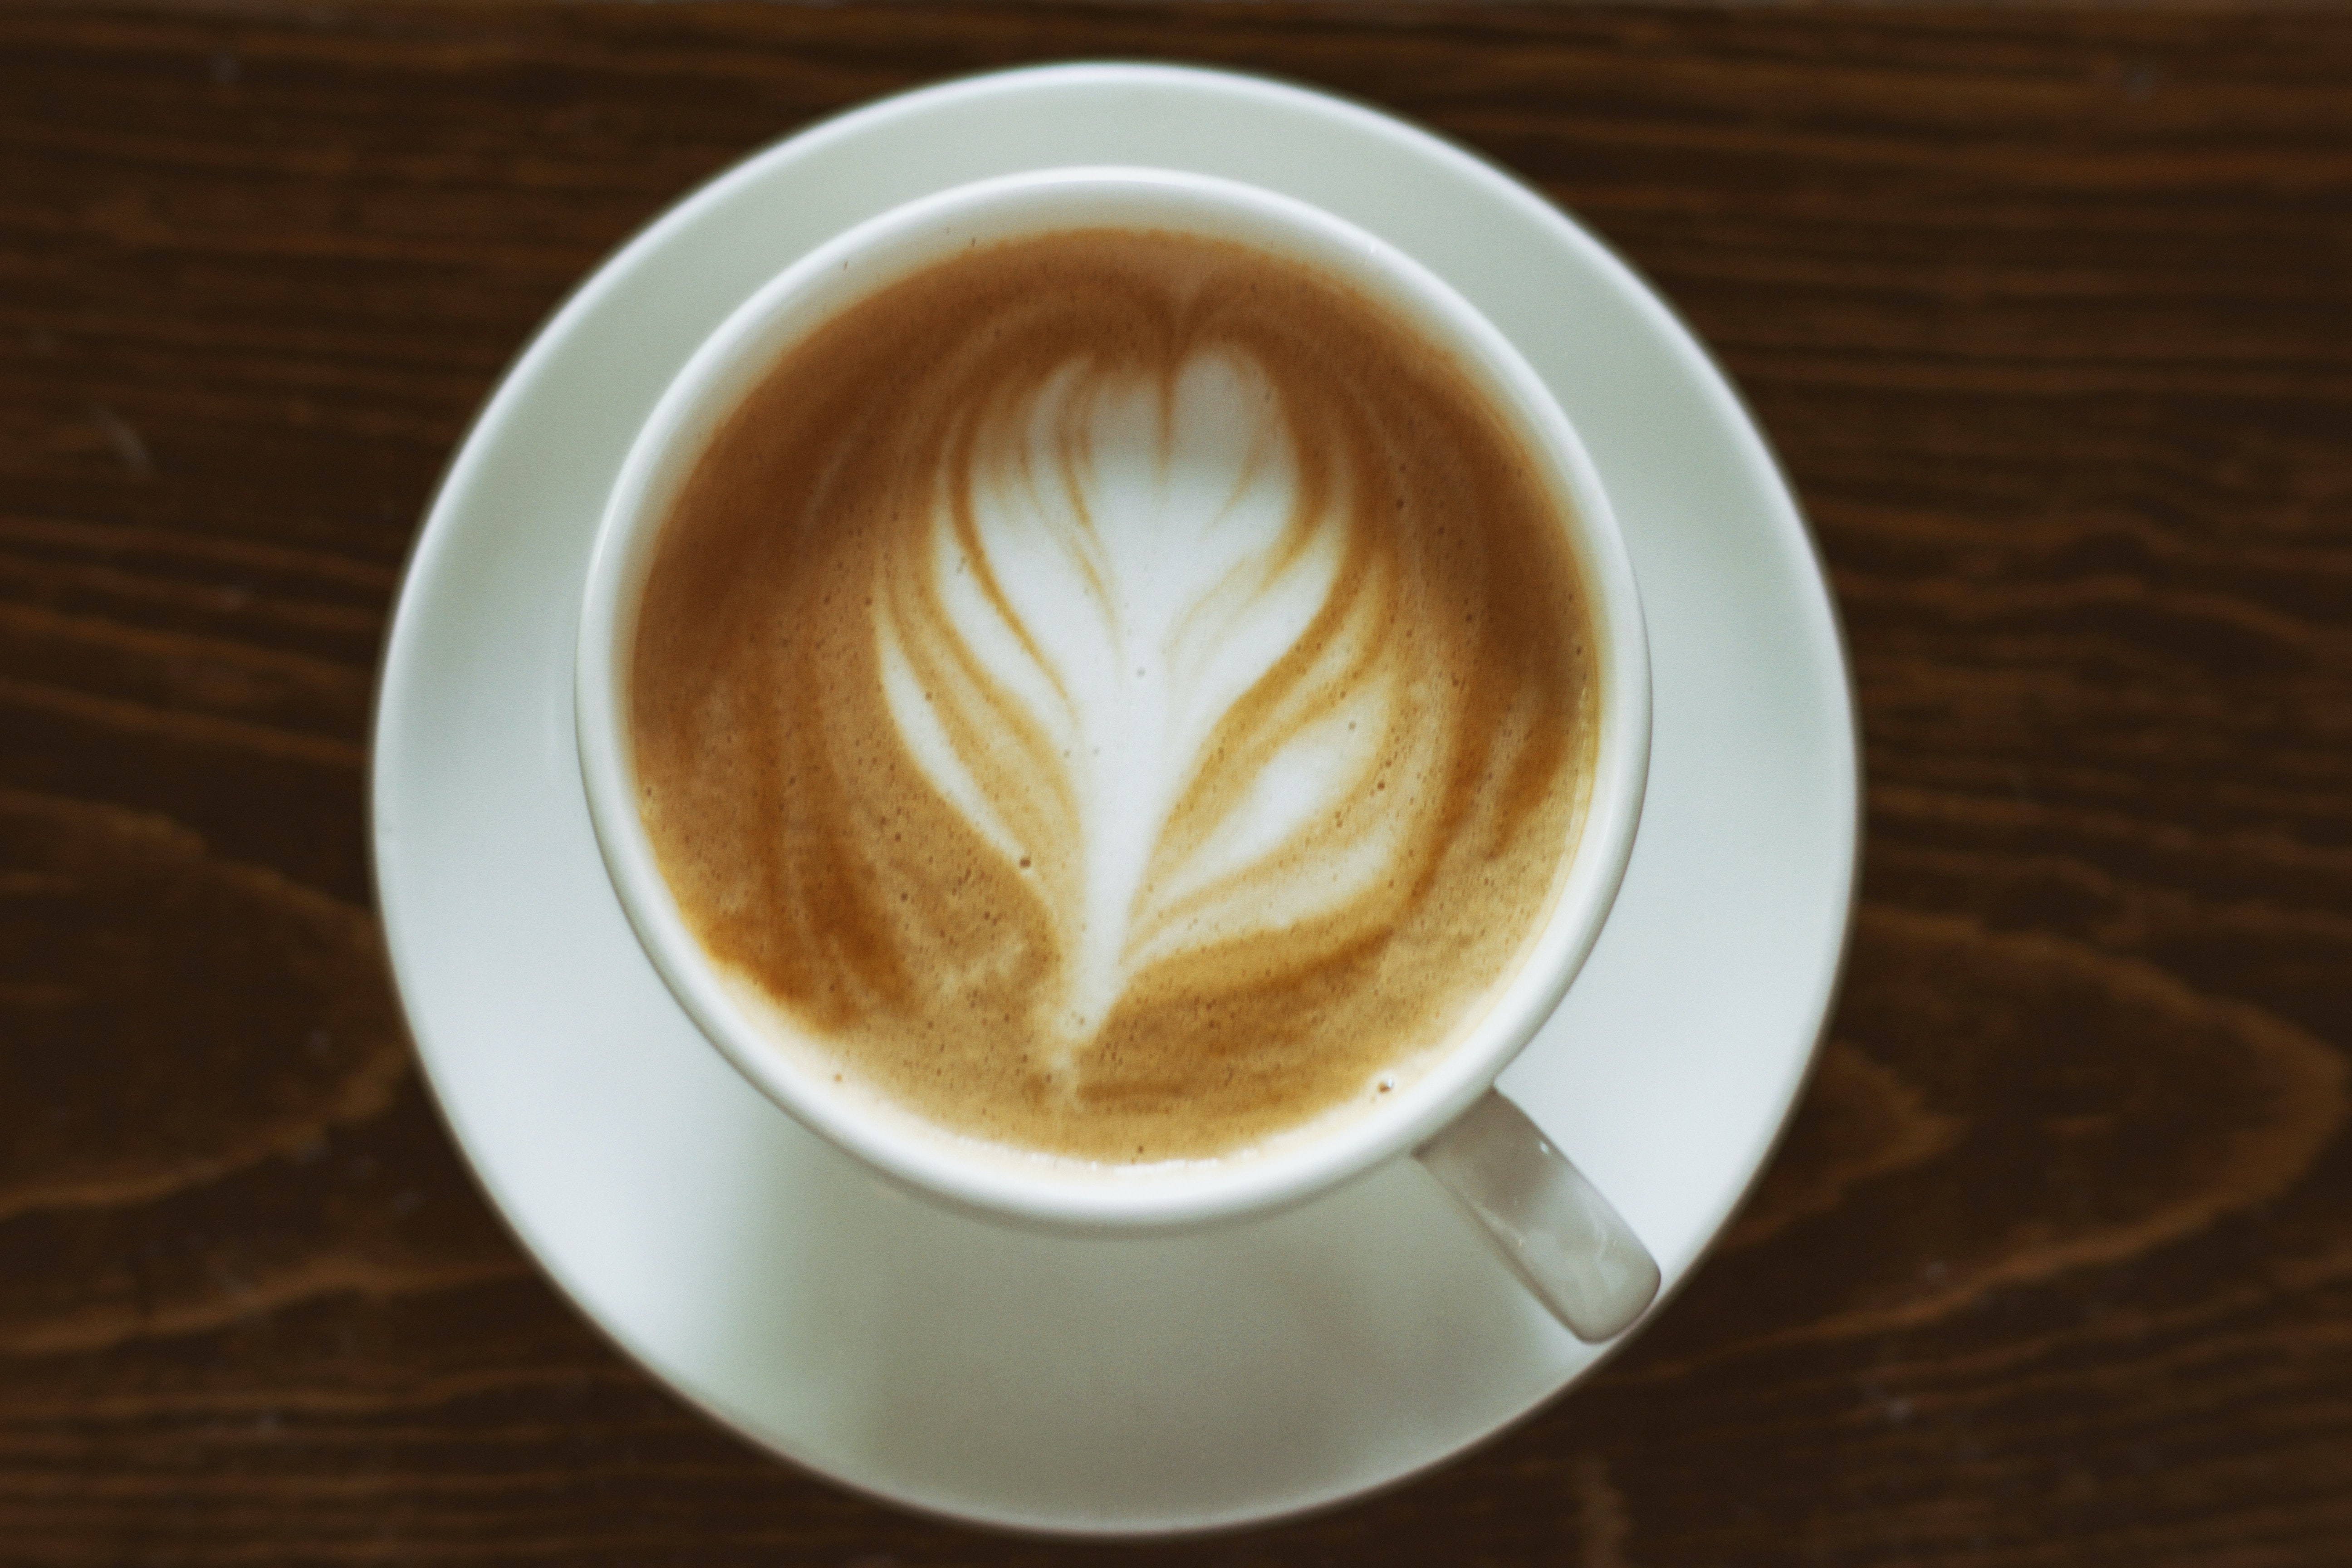 A flower shape on top of a cup of coffee.